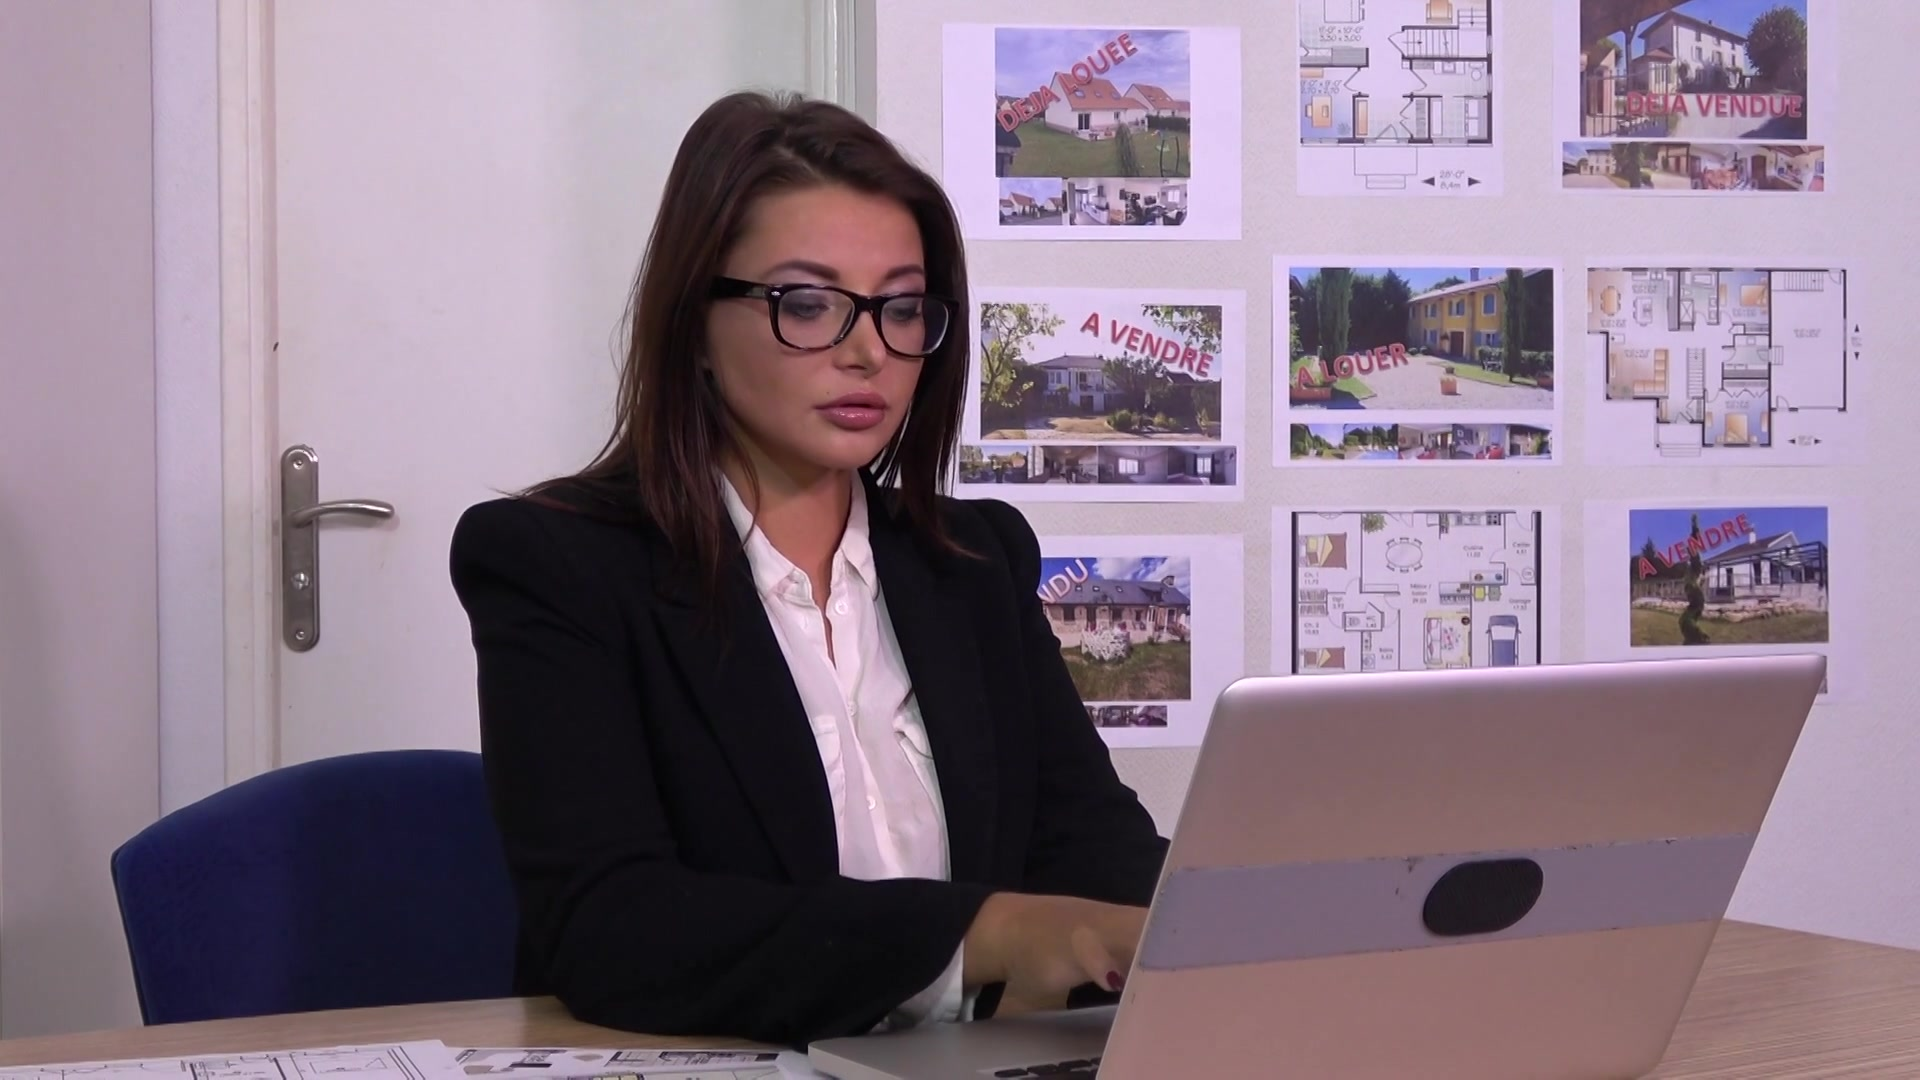 Ania real estate agency boss